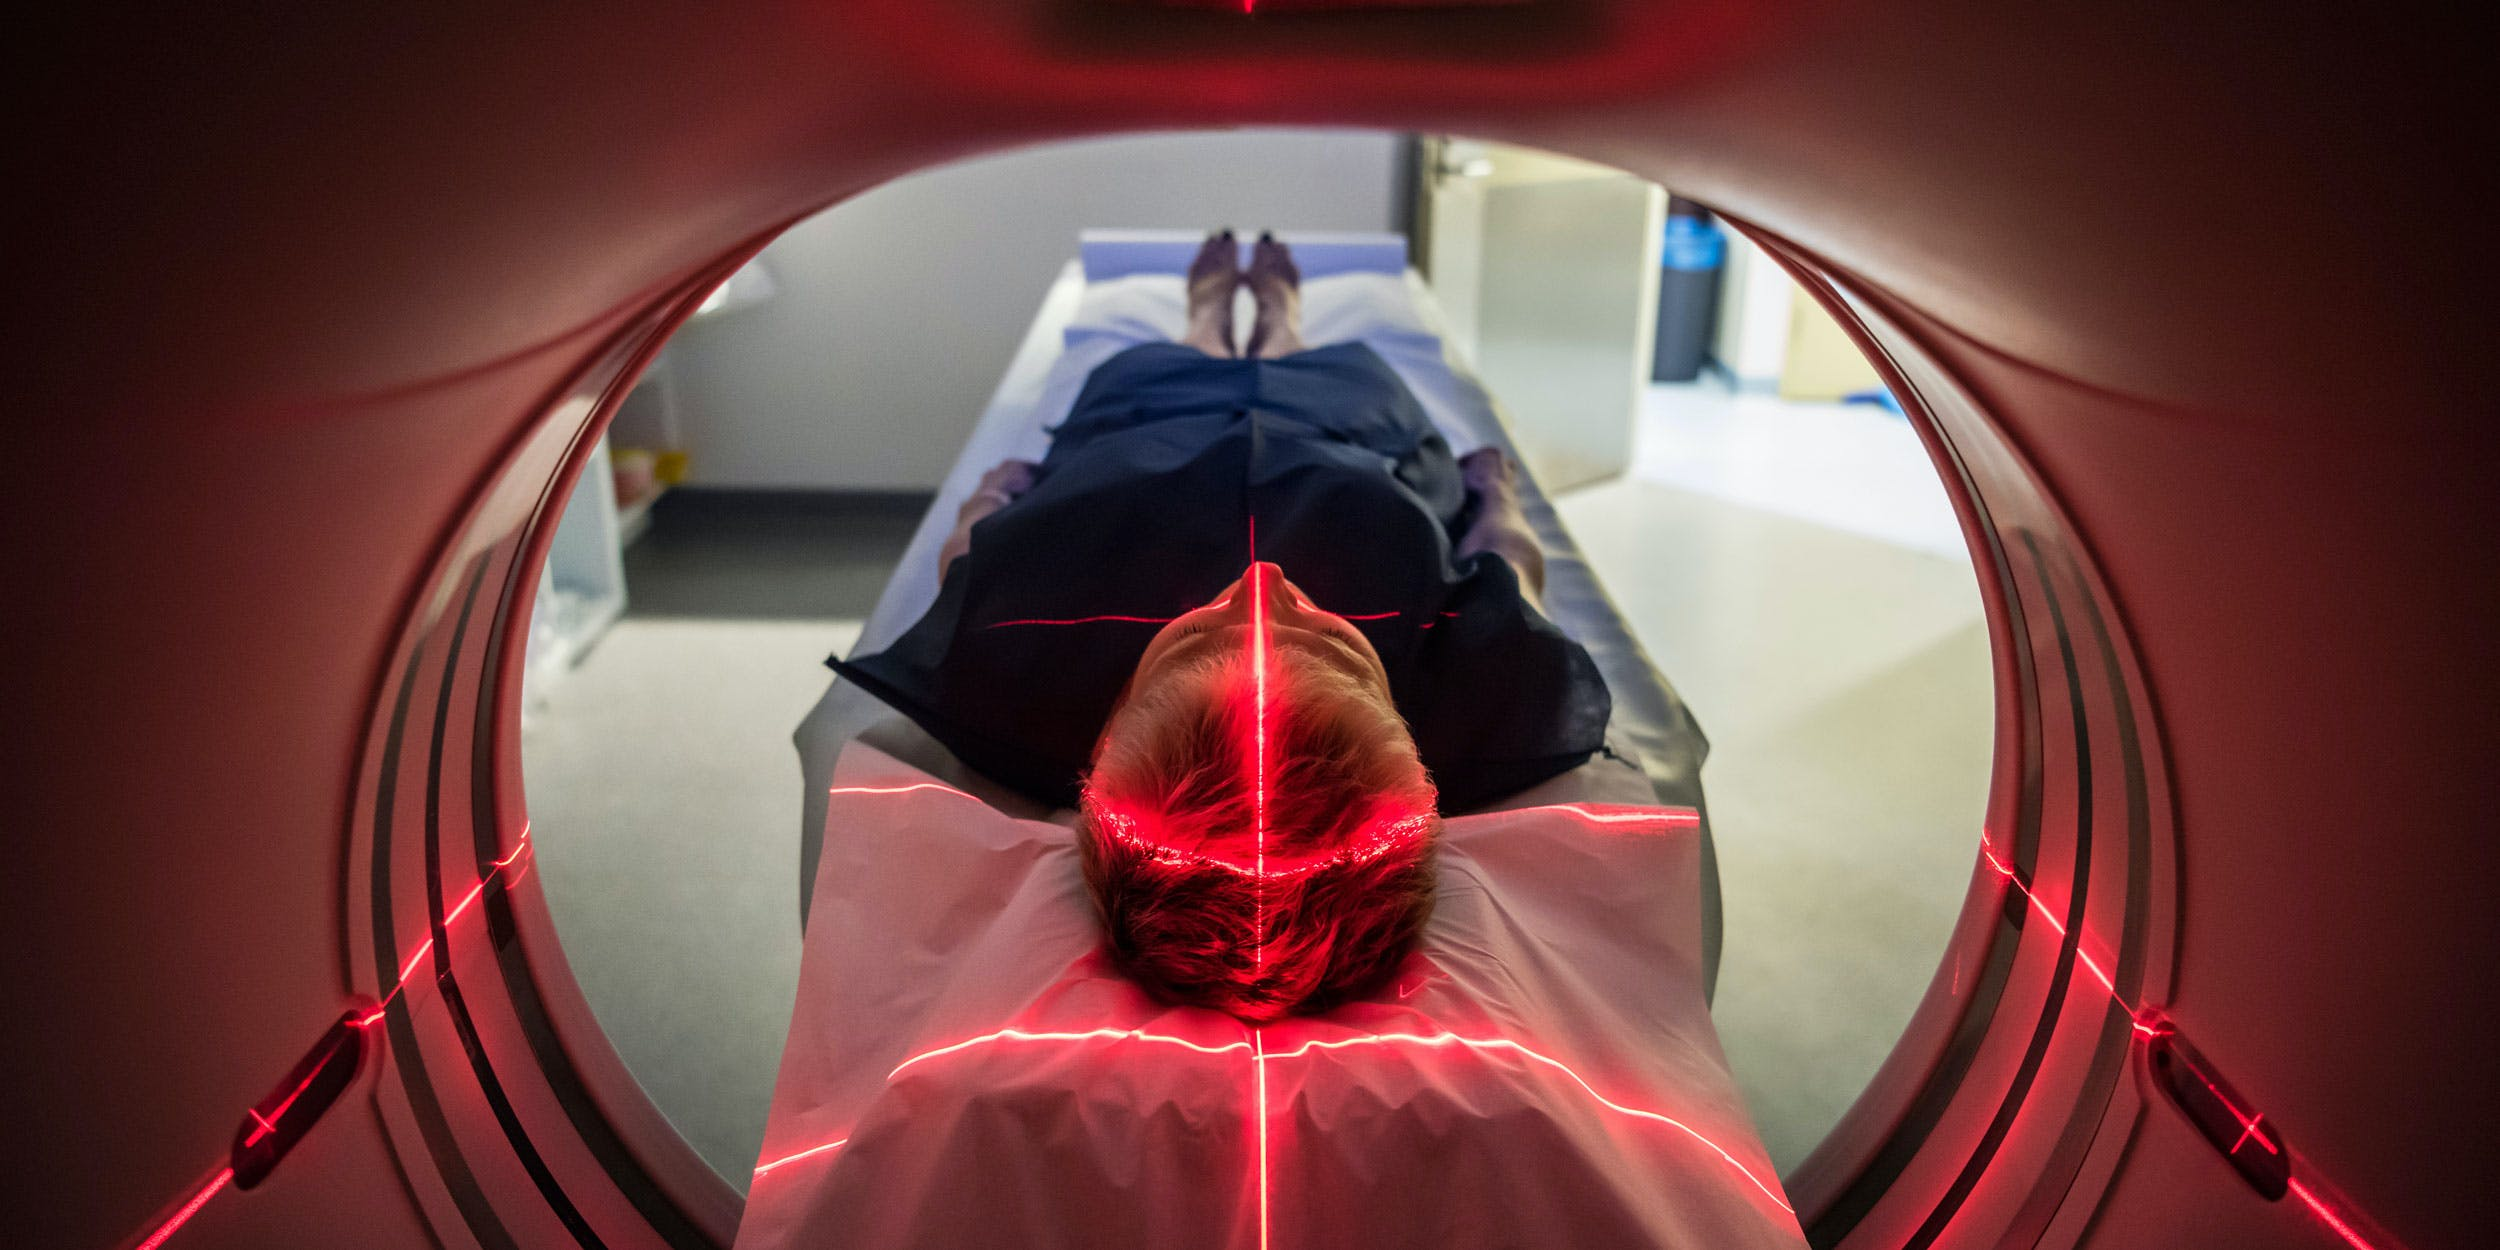 Person undergoing a CAT scan in New Mexico